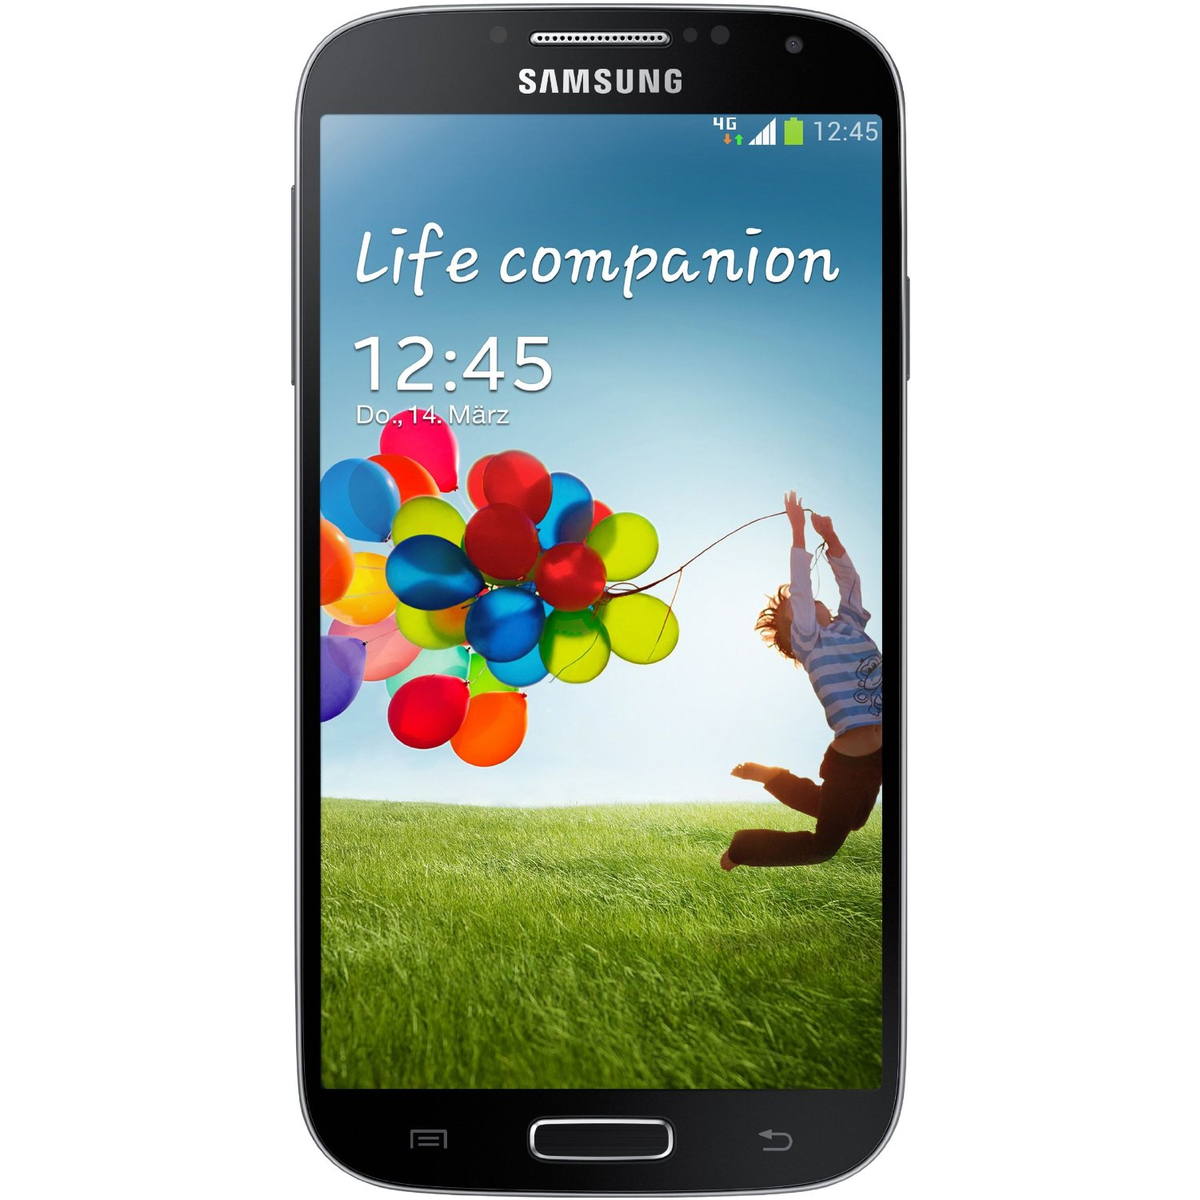 Samsung Galaxy S4 Smartphone Black Edition 16 GB